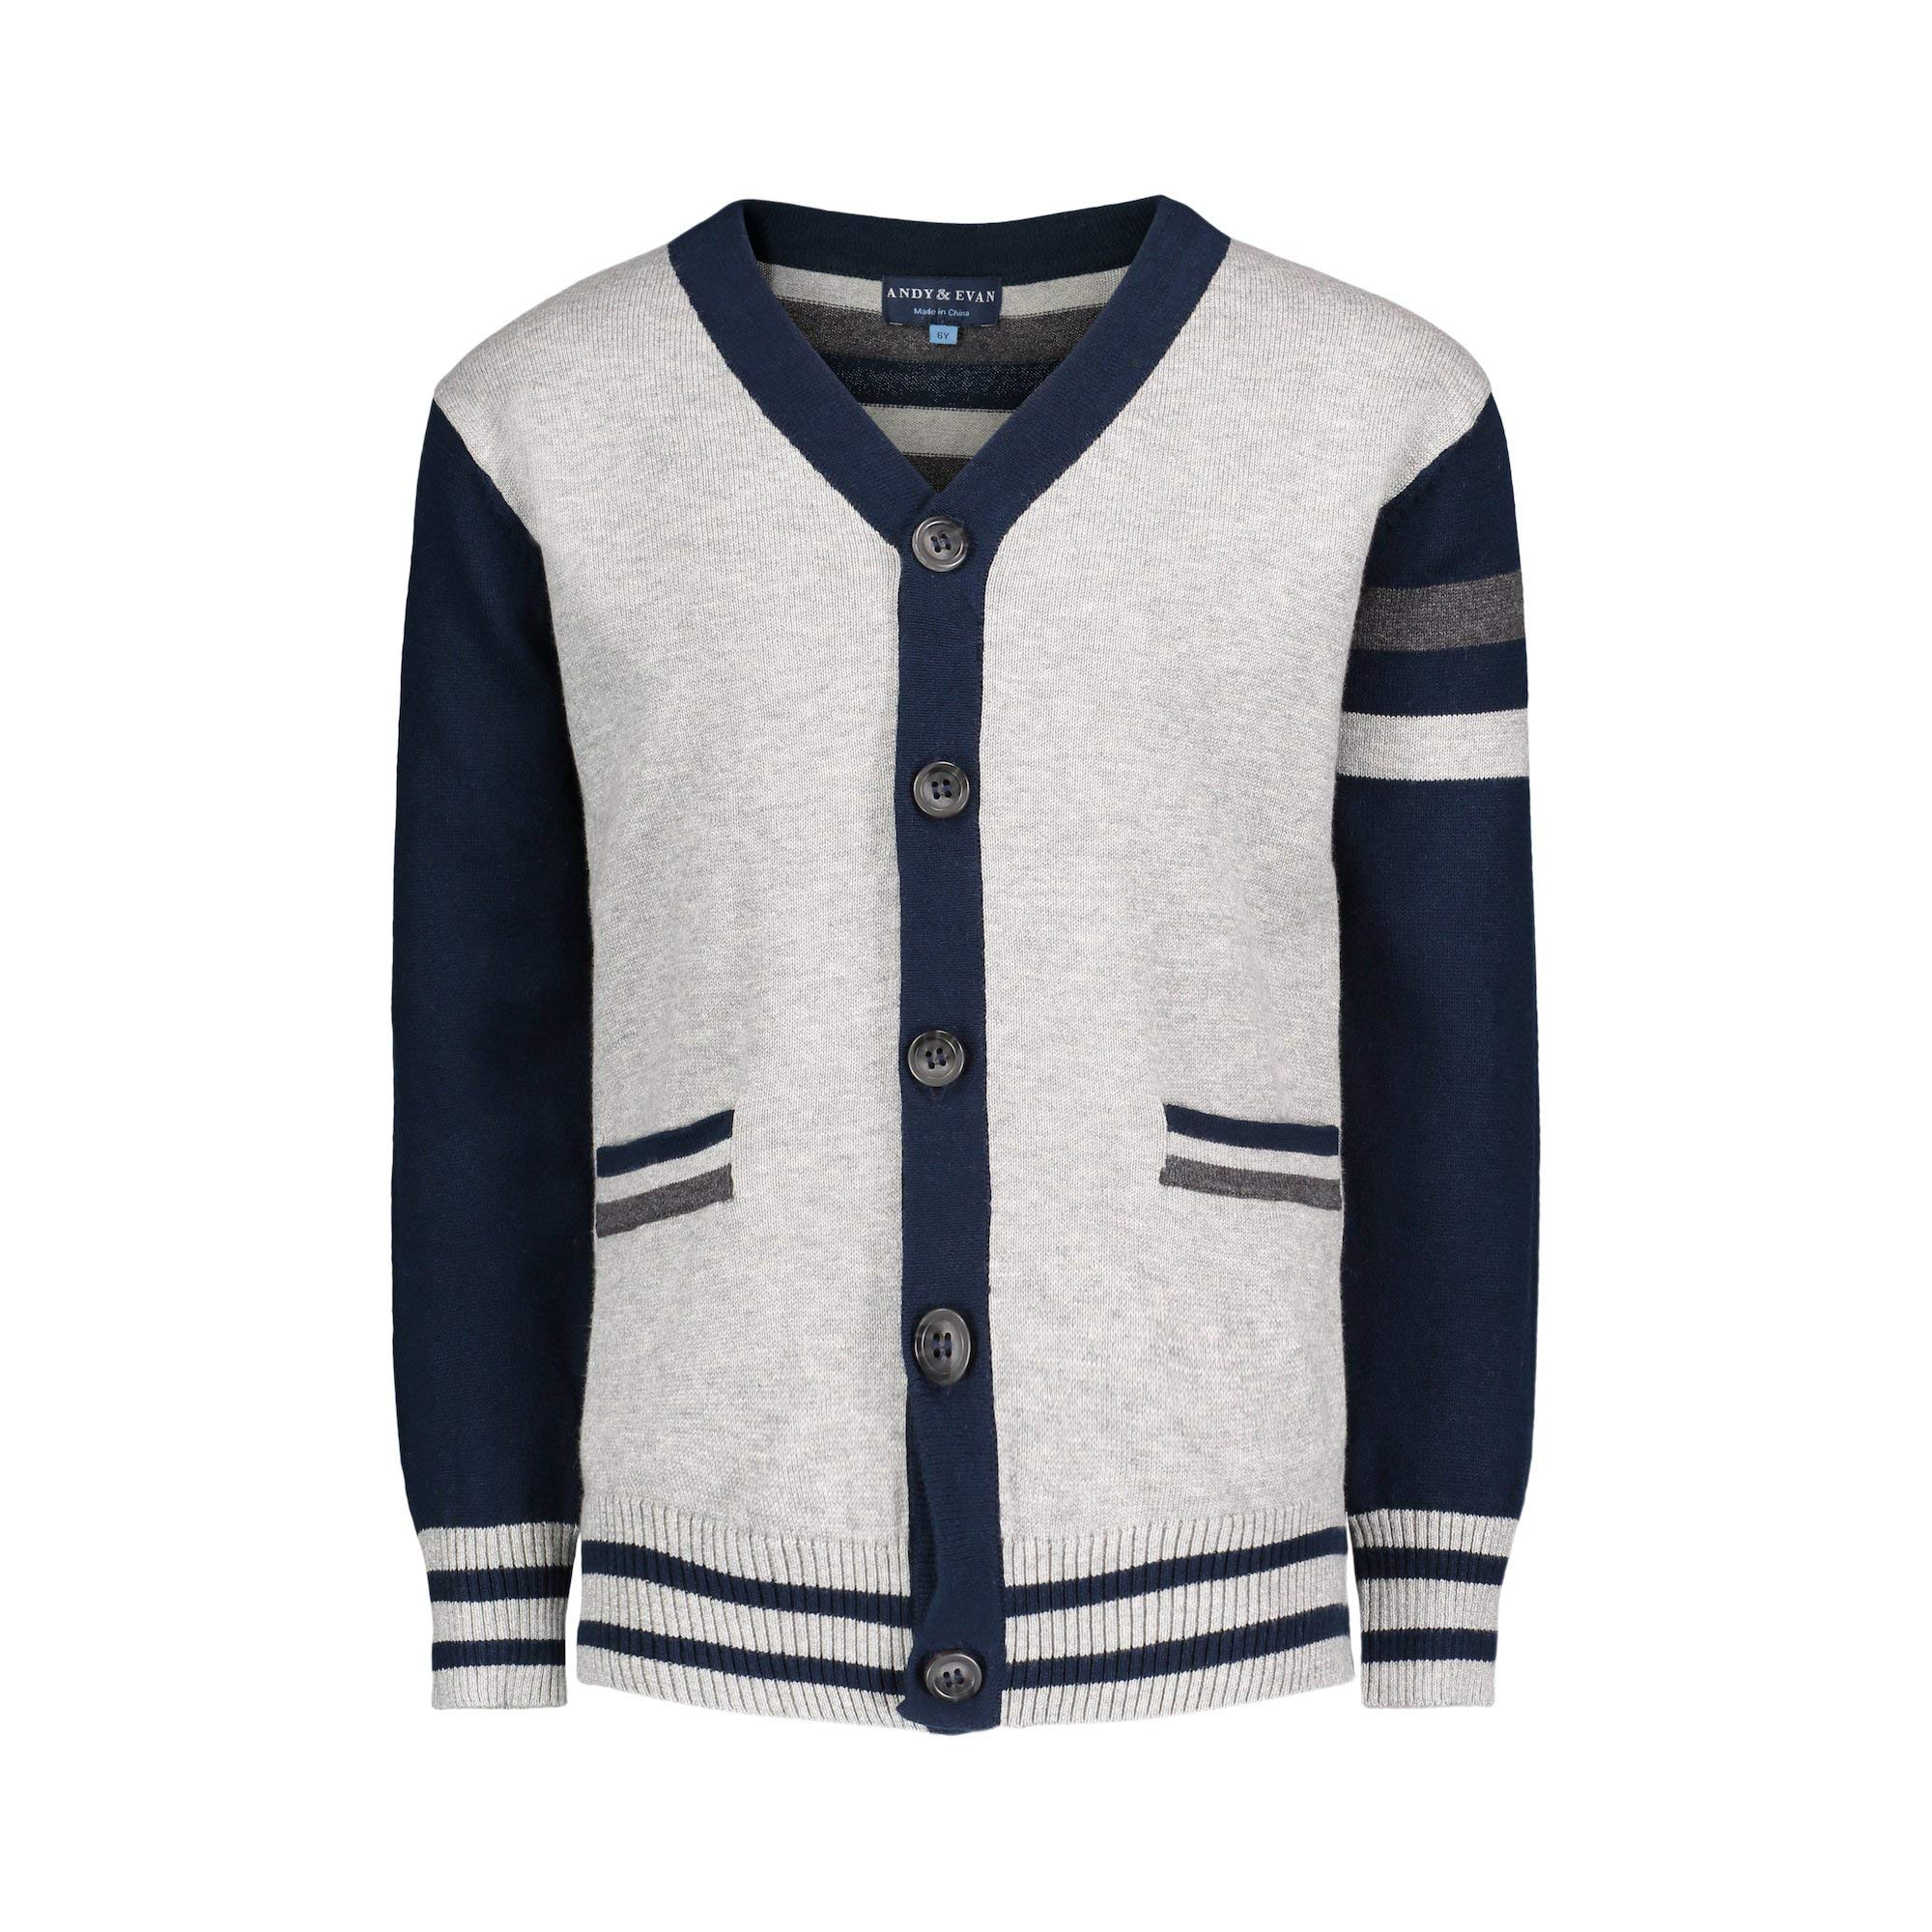 Andy & Evan Infant, Toddler & Kid Boys' Varsity Cardigan with Pockets by Andy & Evan